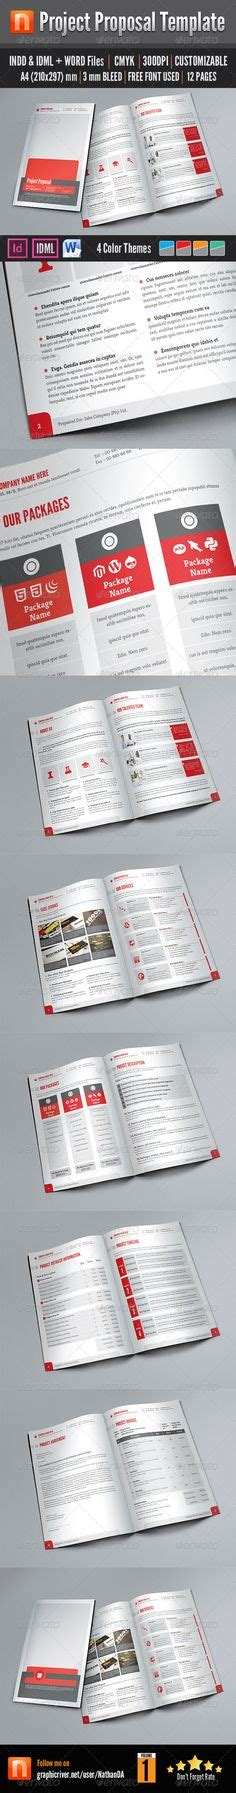 Timeline In Keynote Template Freetimeline Indesign Template Vertical by Capability Statement Exles Google Search Graphic